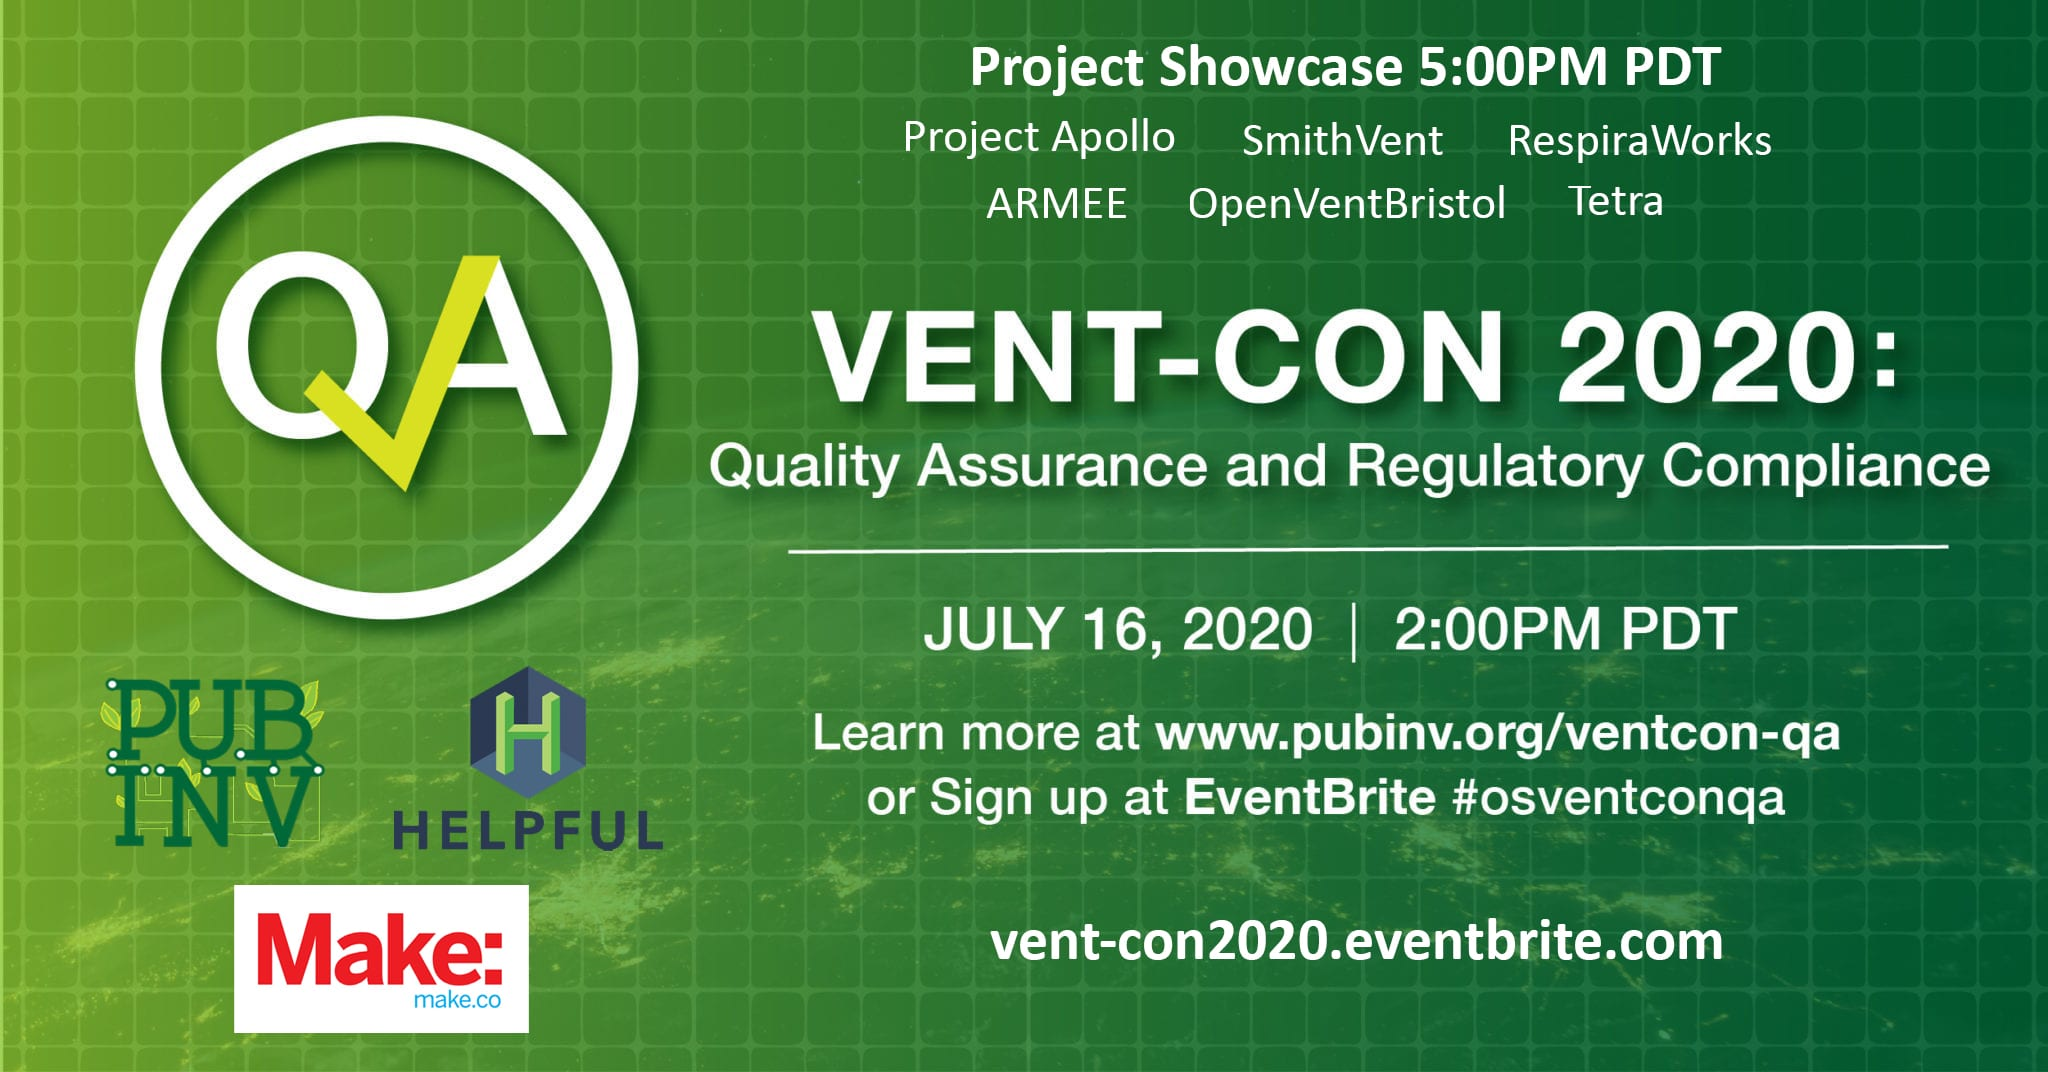 Vent-Con2020 Quality Assurance and Regulatory Compliance